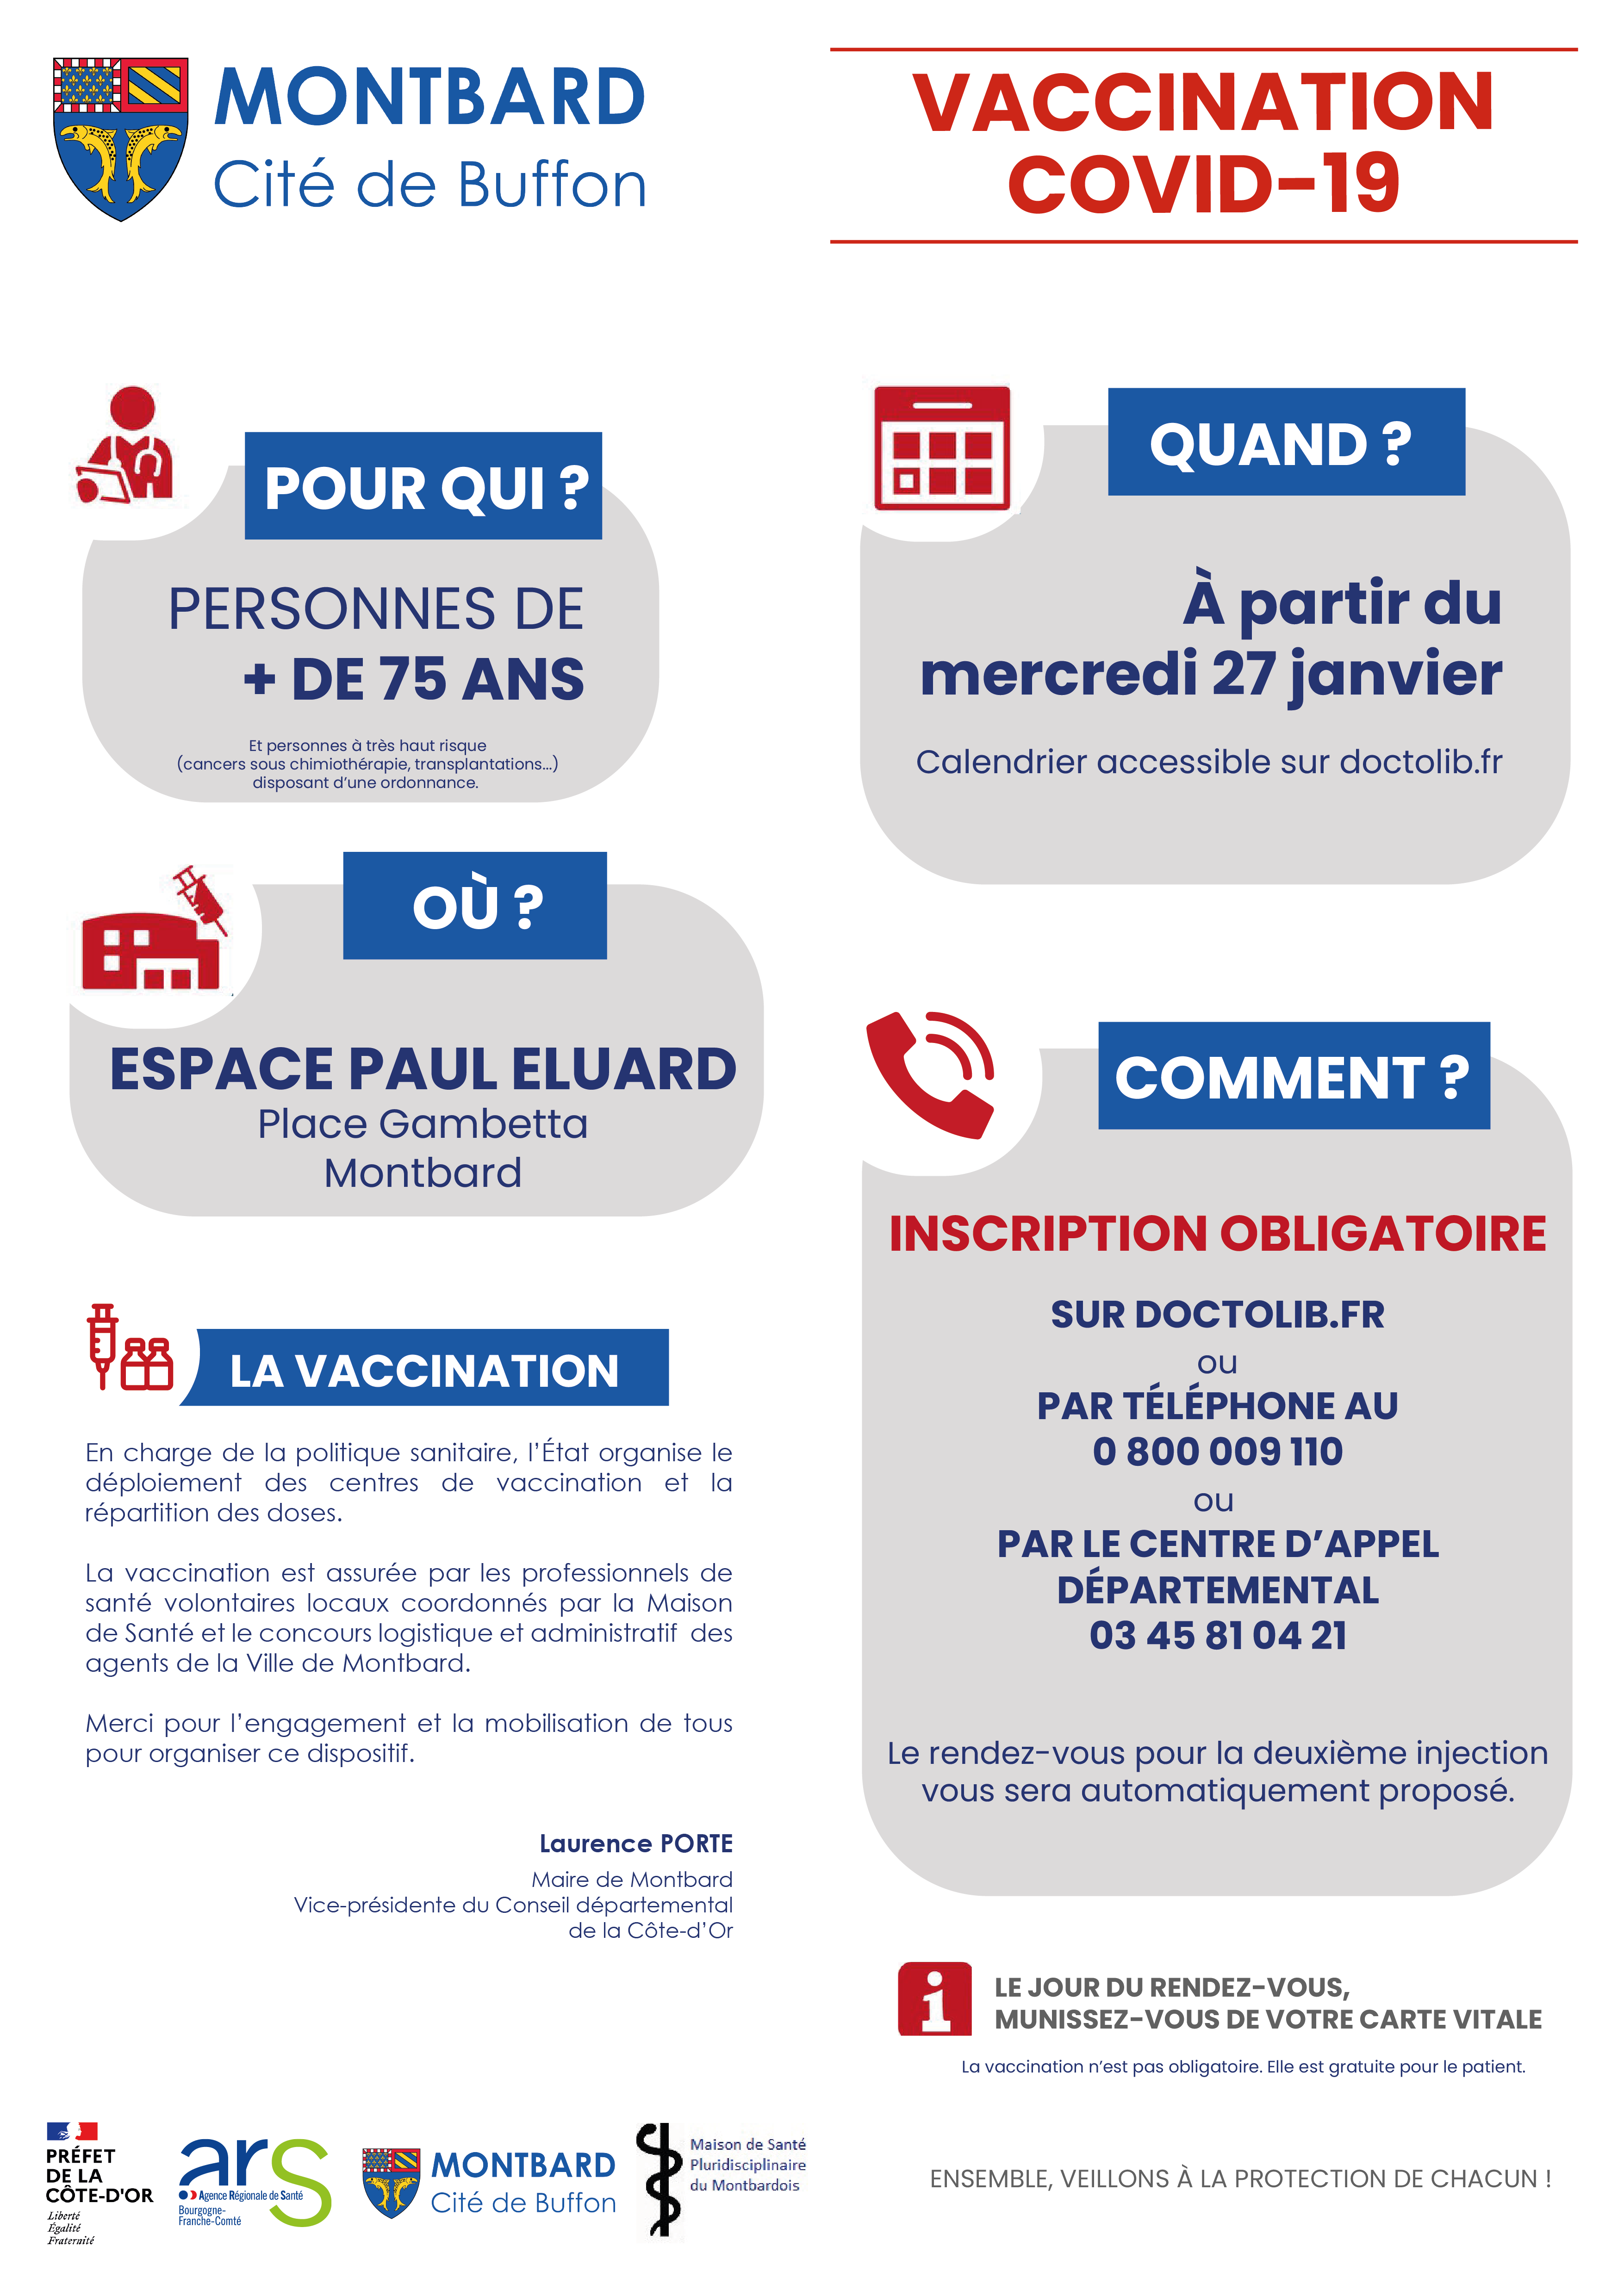 vaccination covid 19 montbard